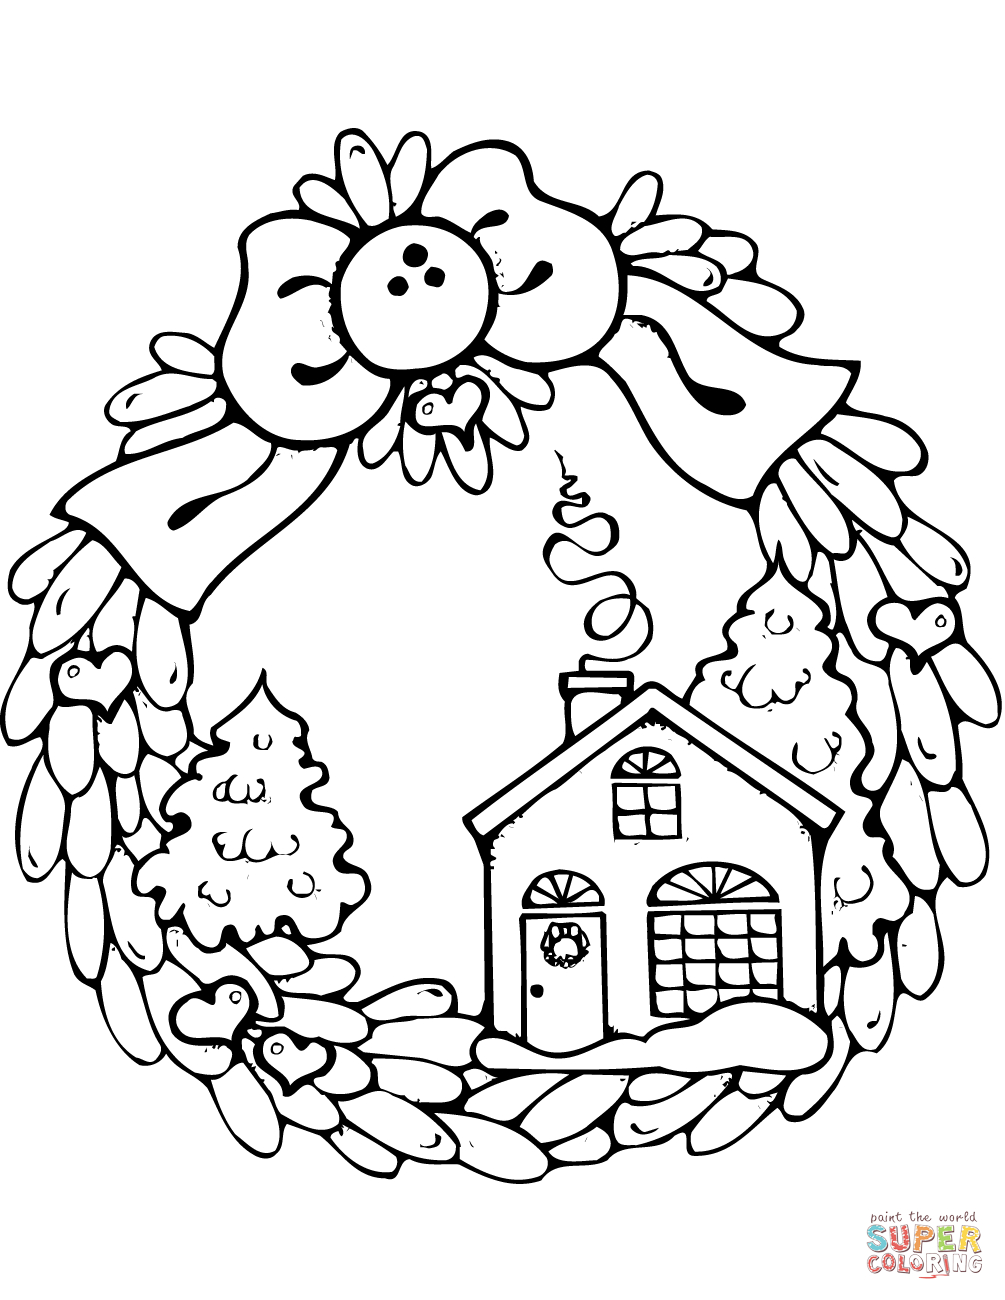 Free Christmas Coloring Pages Gingerbread House With Of Houses Wreath